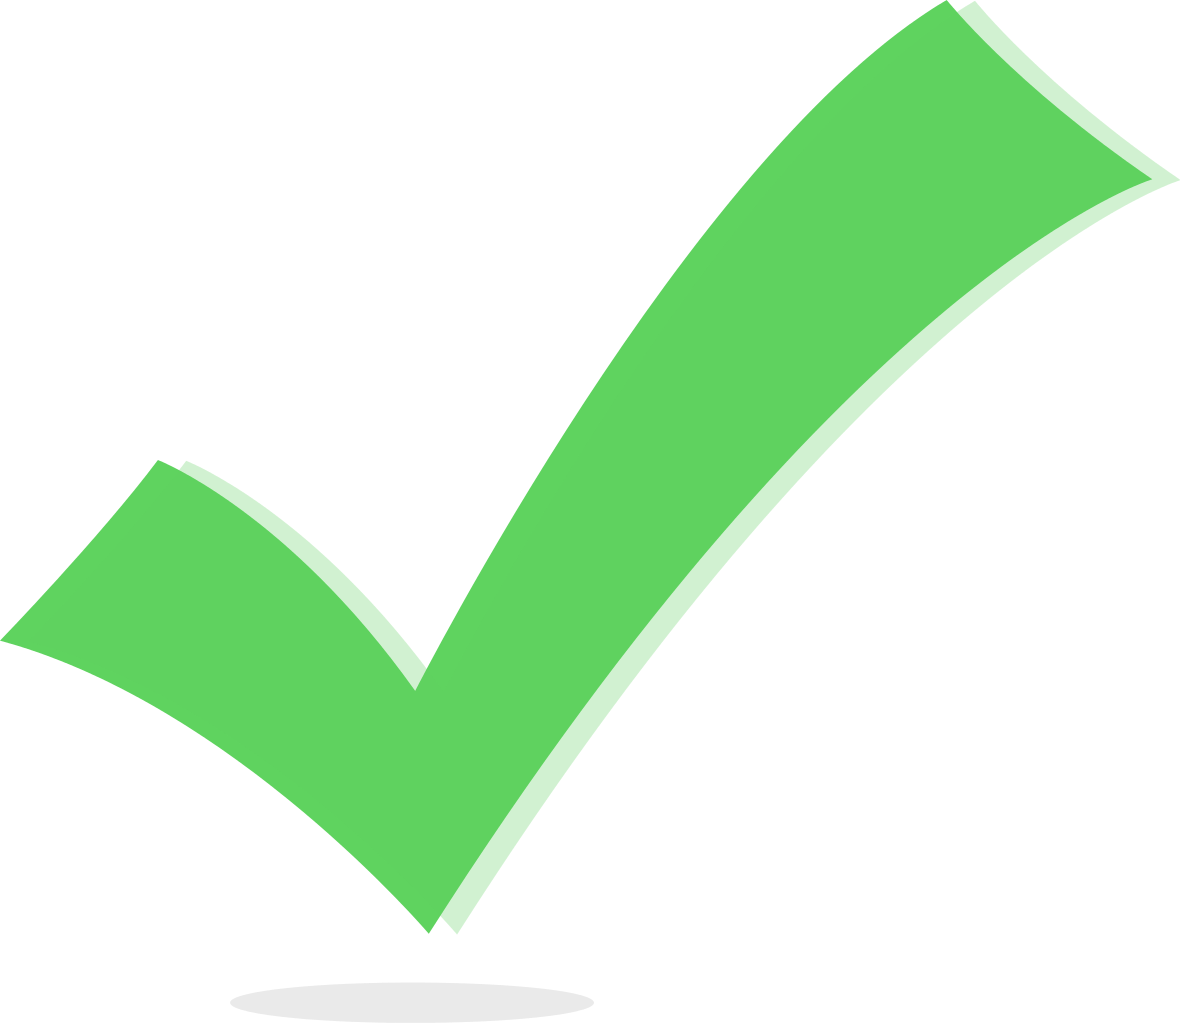 Green checkmark png. File svg wikipedia filecheckmark